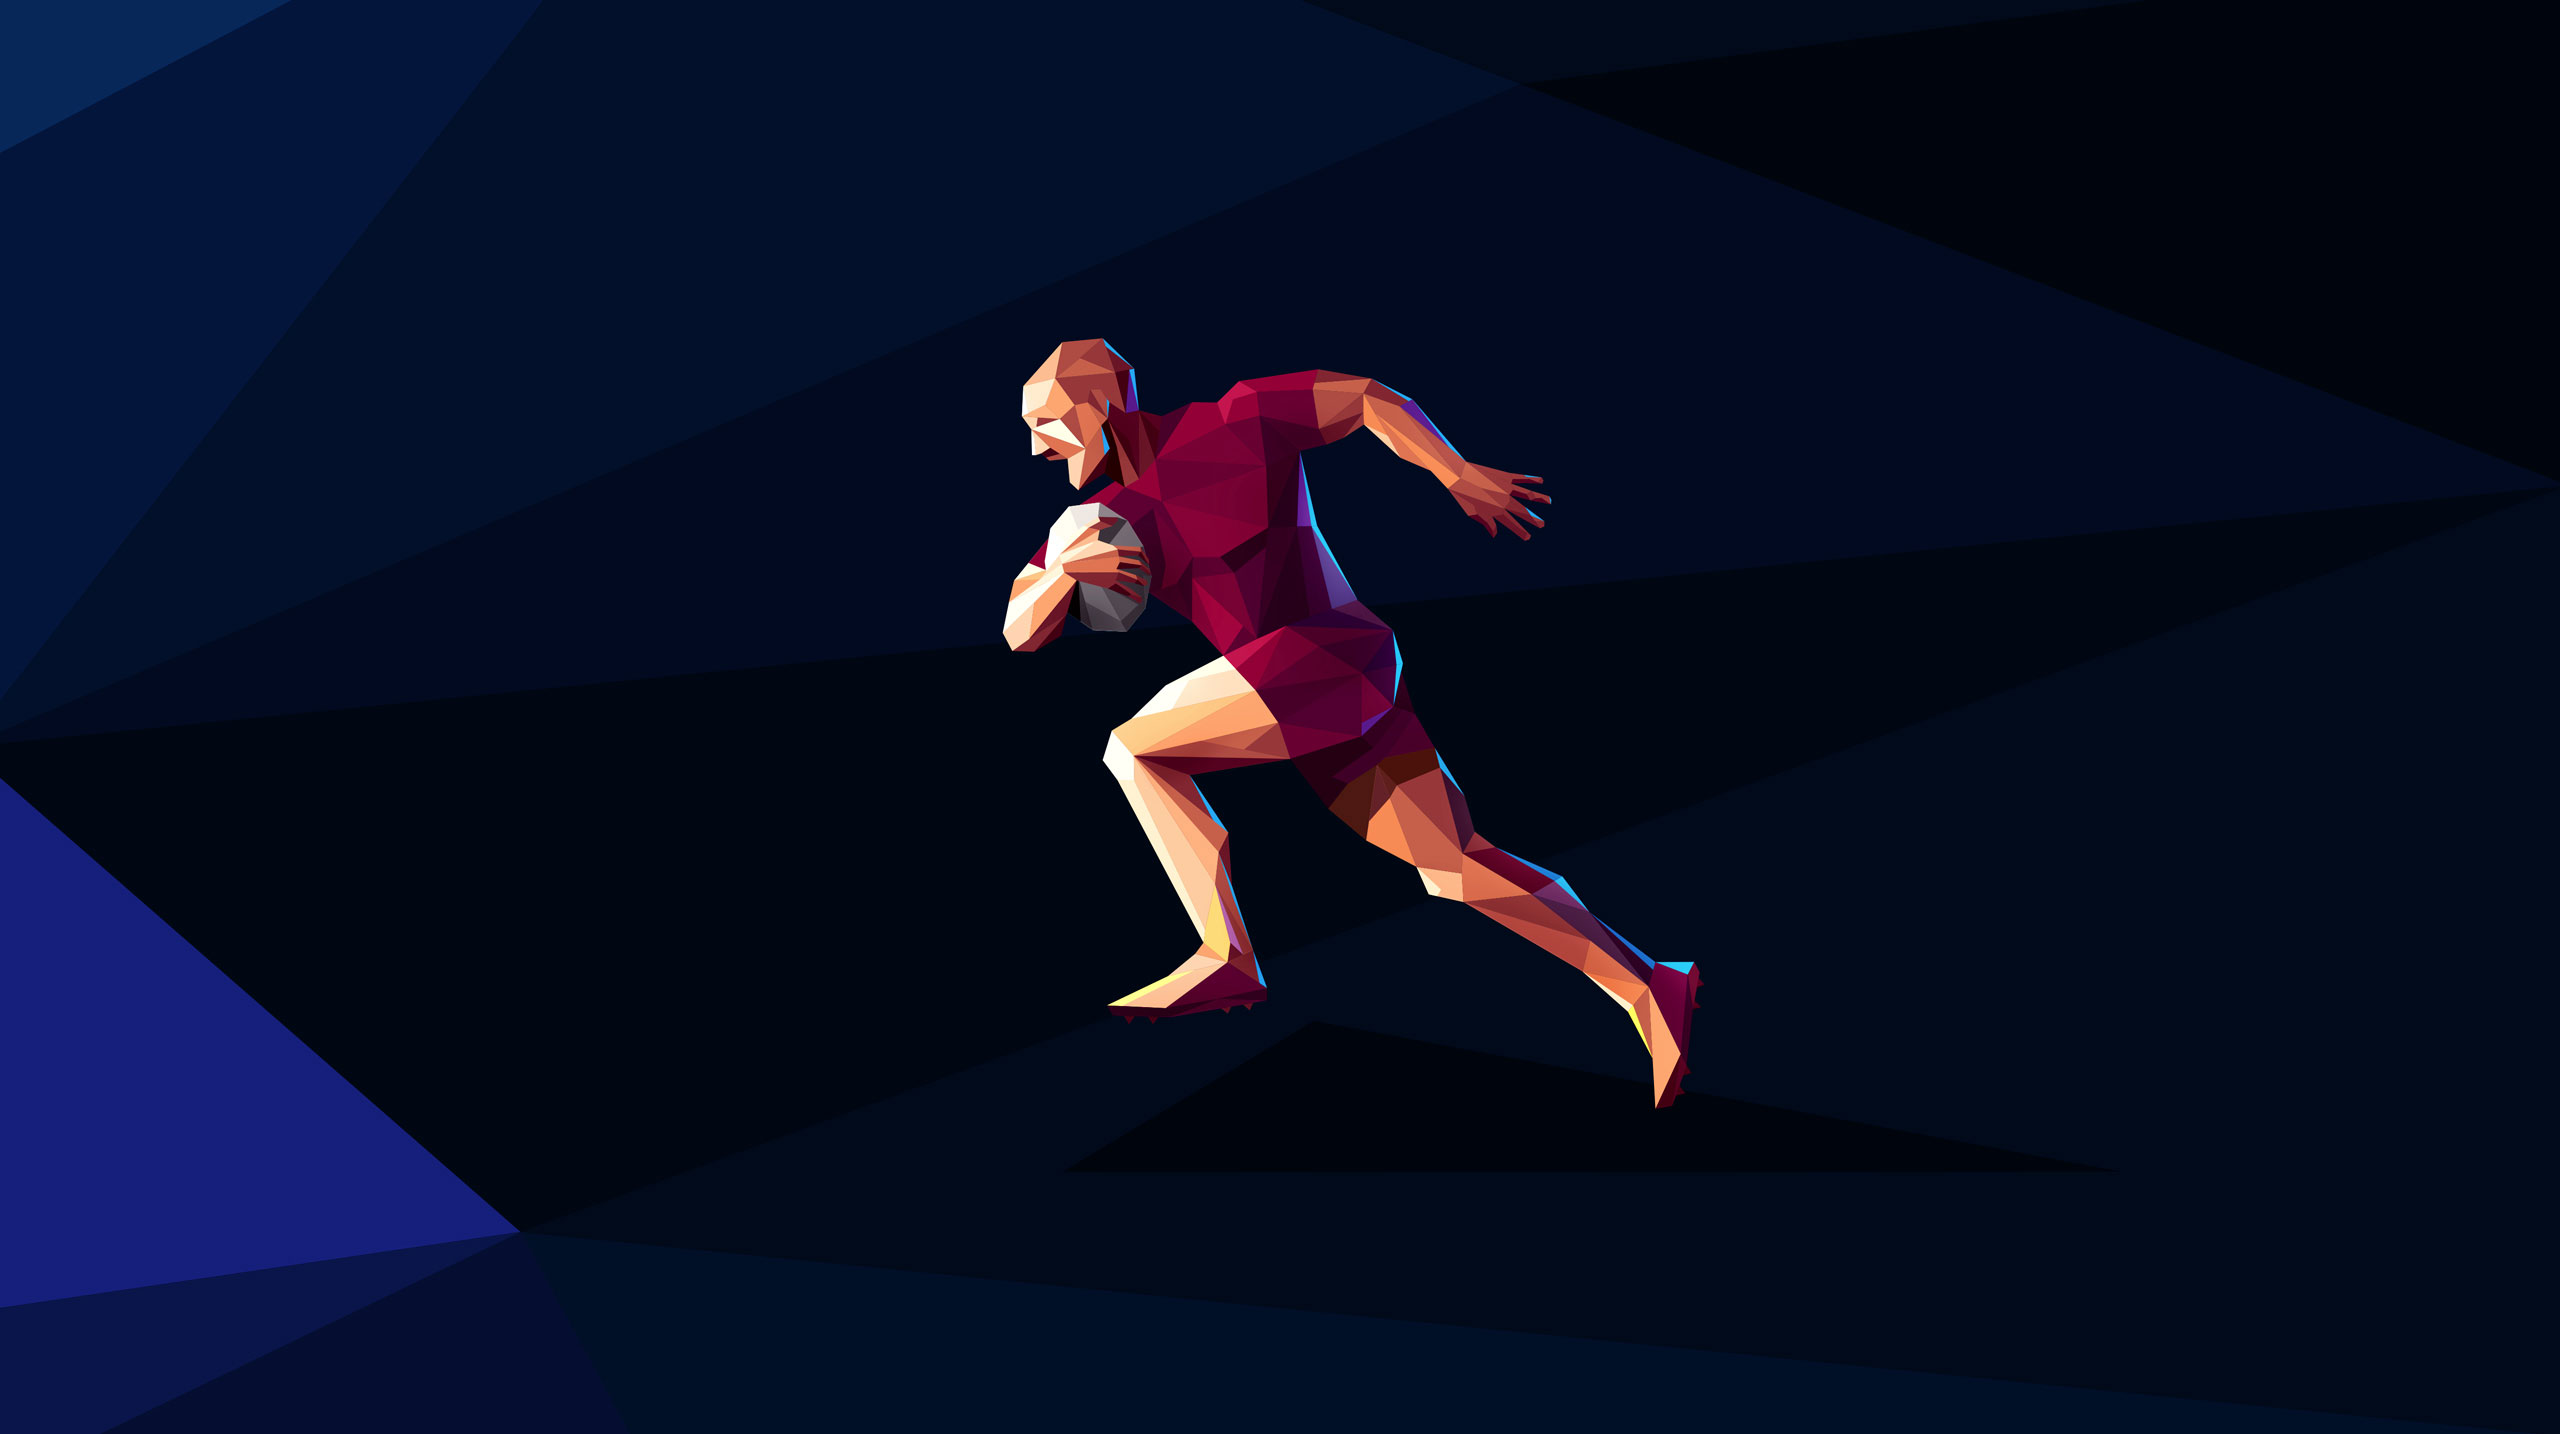 RugbyPlayer_LowPoly_01_Illustration_w2560_quality60